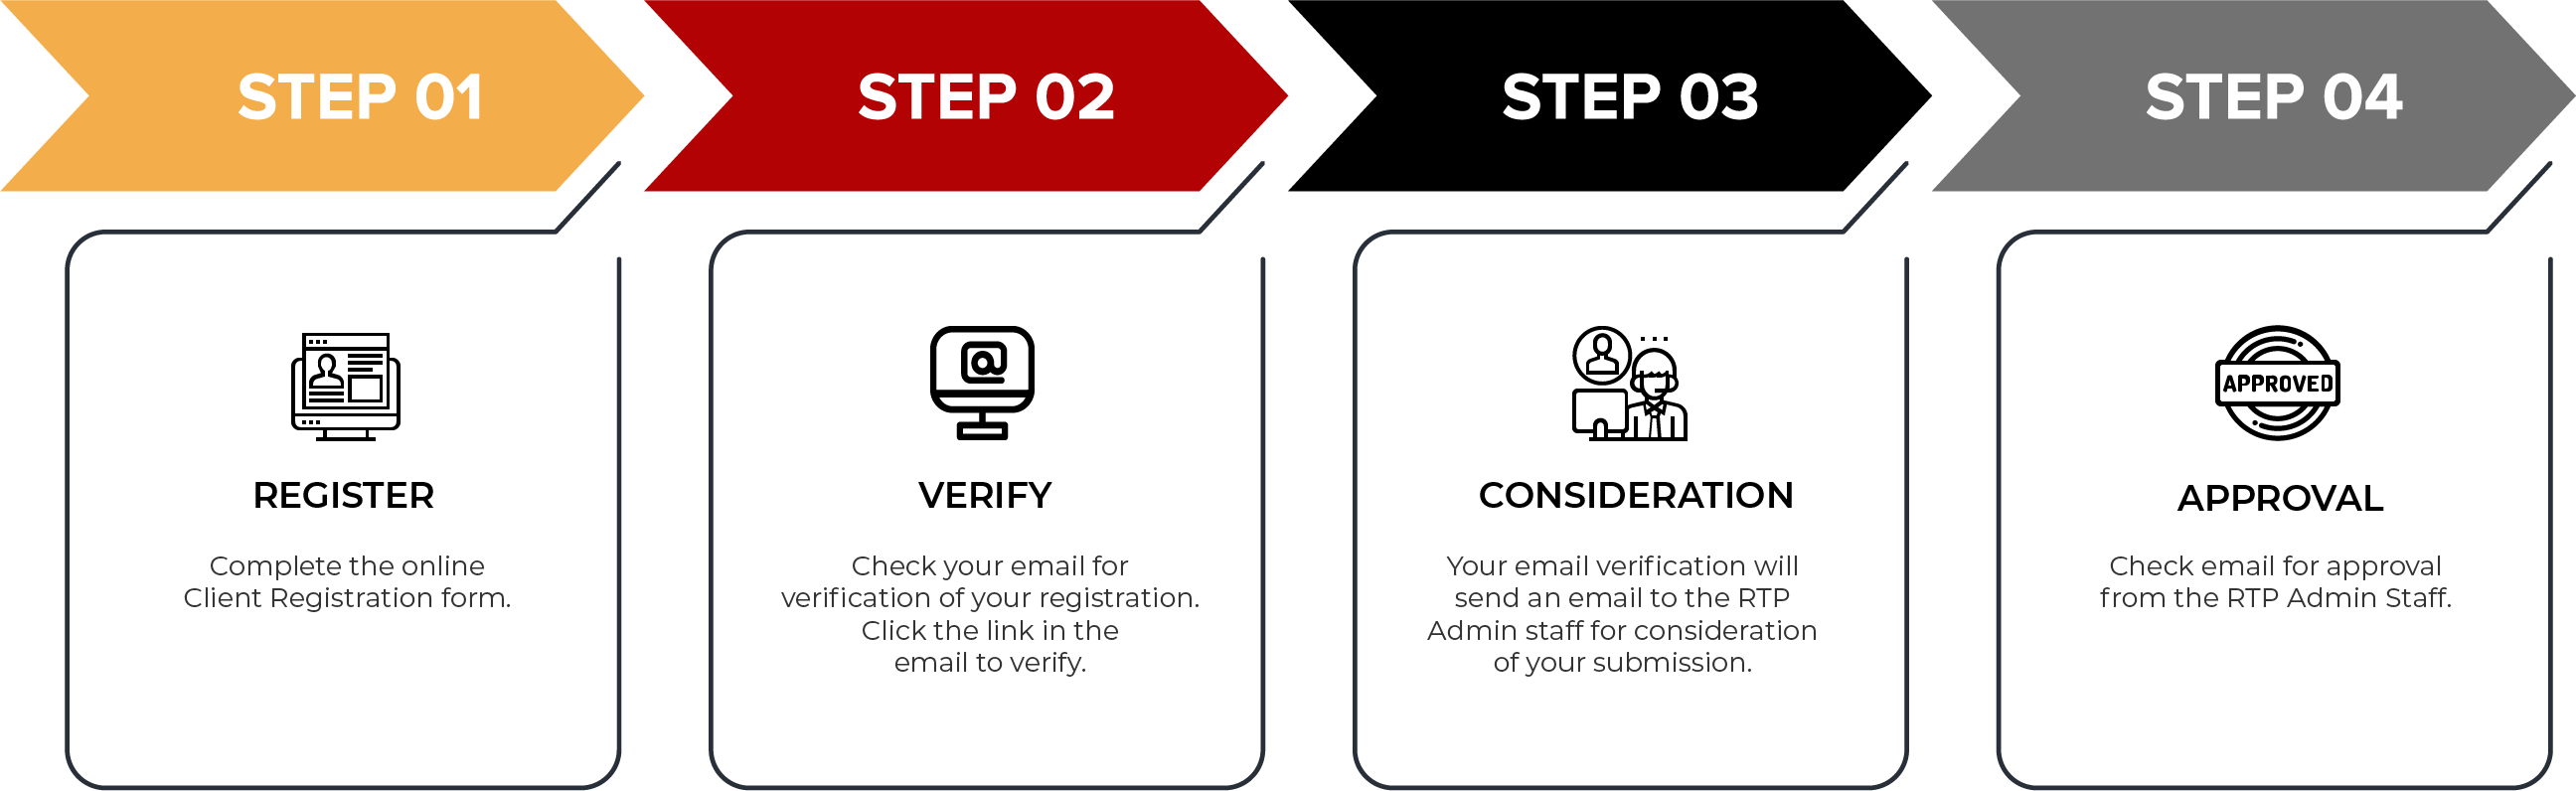 RTP Registration Process